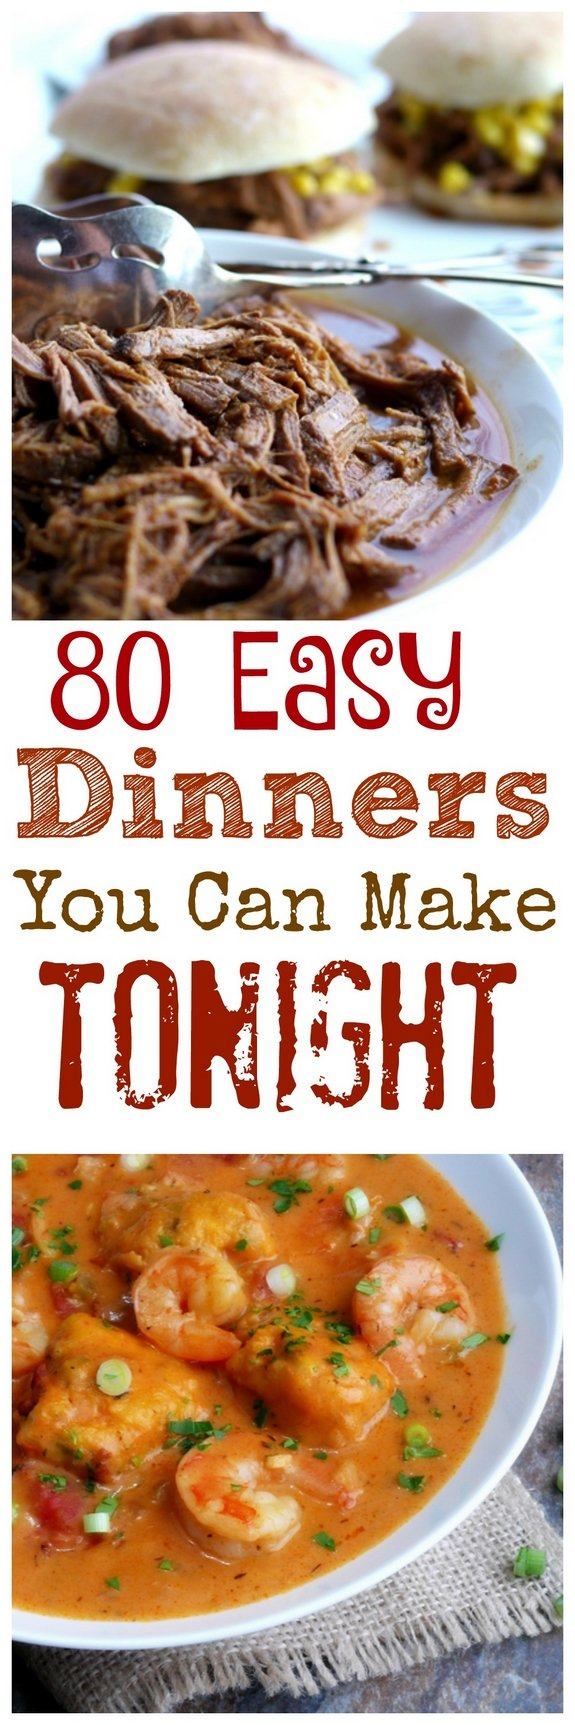 80 Easy Dinners You Can Make Tonight photo collage with text overlay.